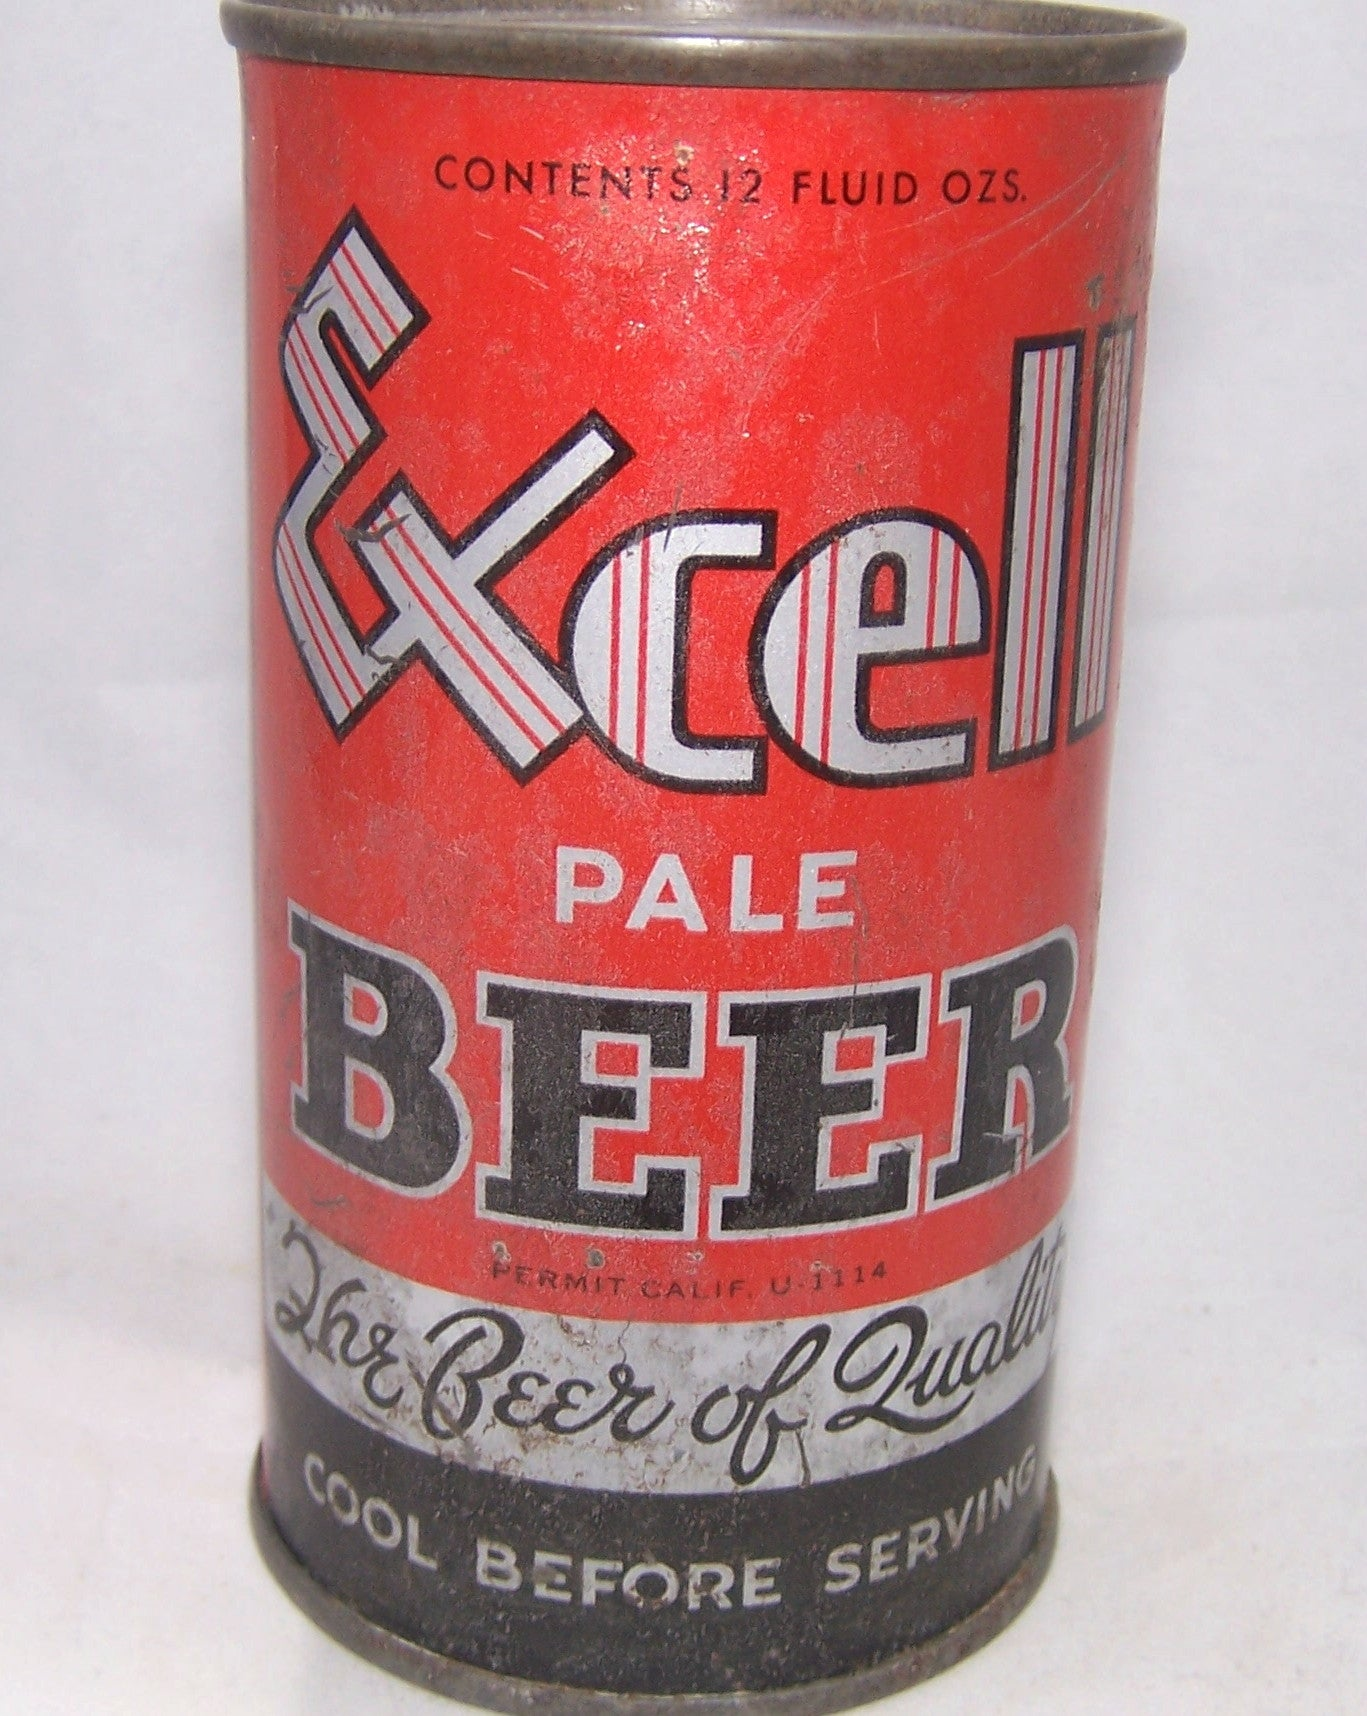 Excell Pale Beer, Lilek # 252, Grade 2+ Sold on 02/24/17